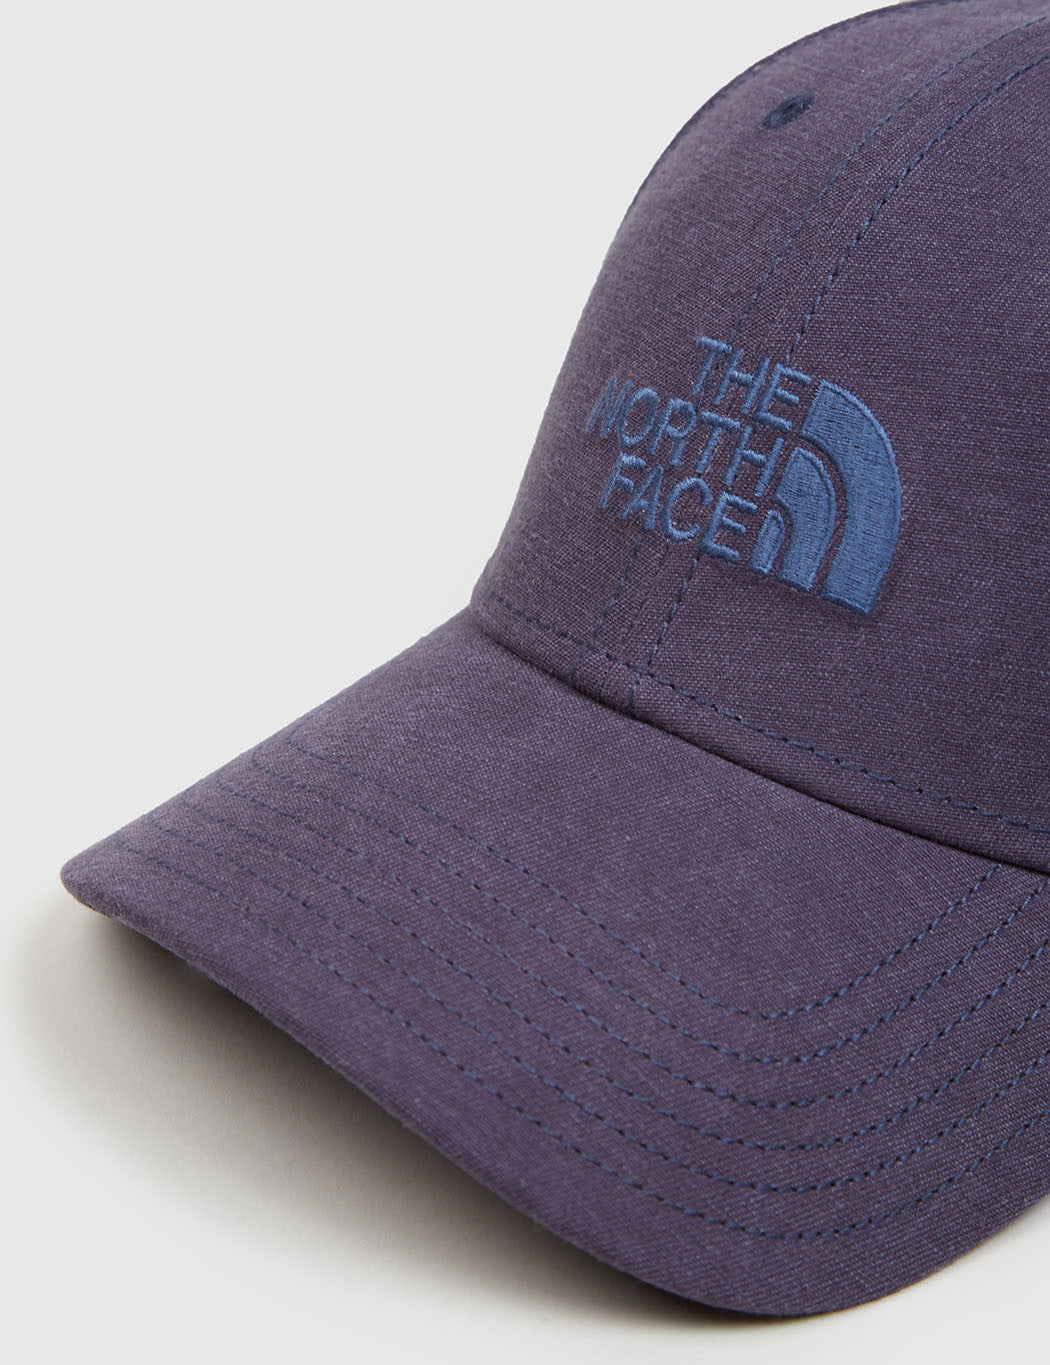 North Face 66 Classic Cap - Urban Navy